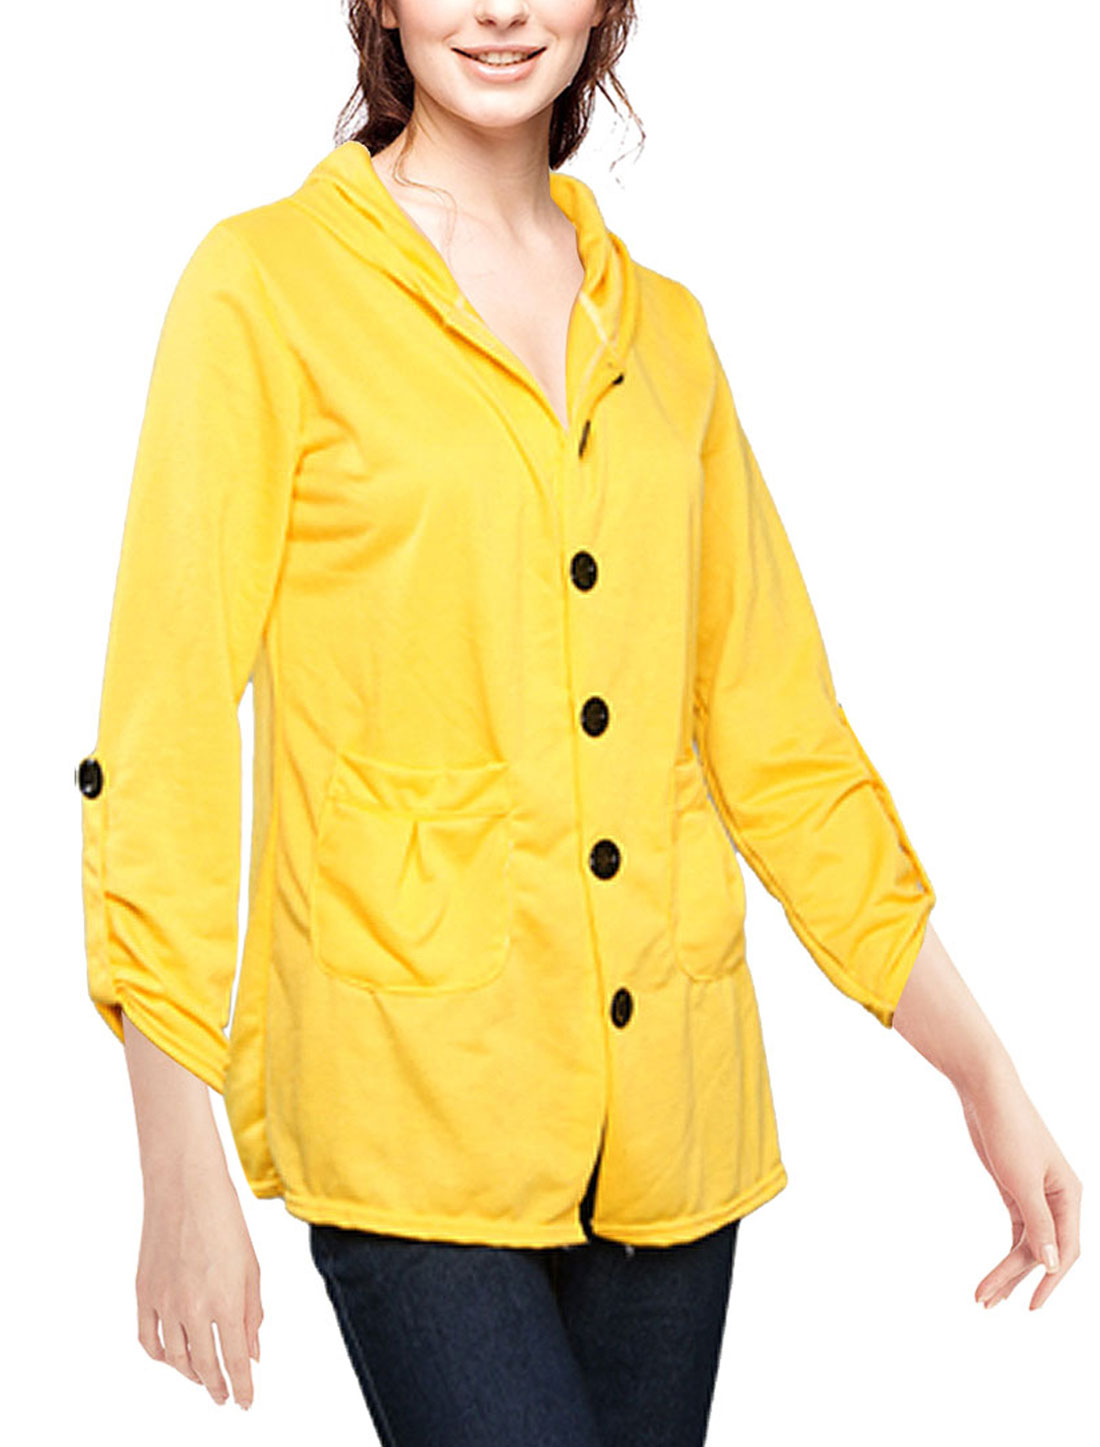 Women Single Breast Yellow Hooded Long Sleeves Autumn Coat XS